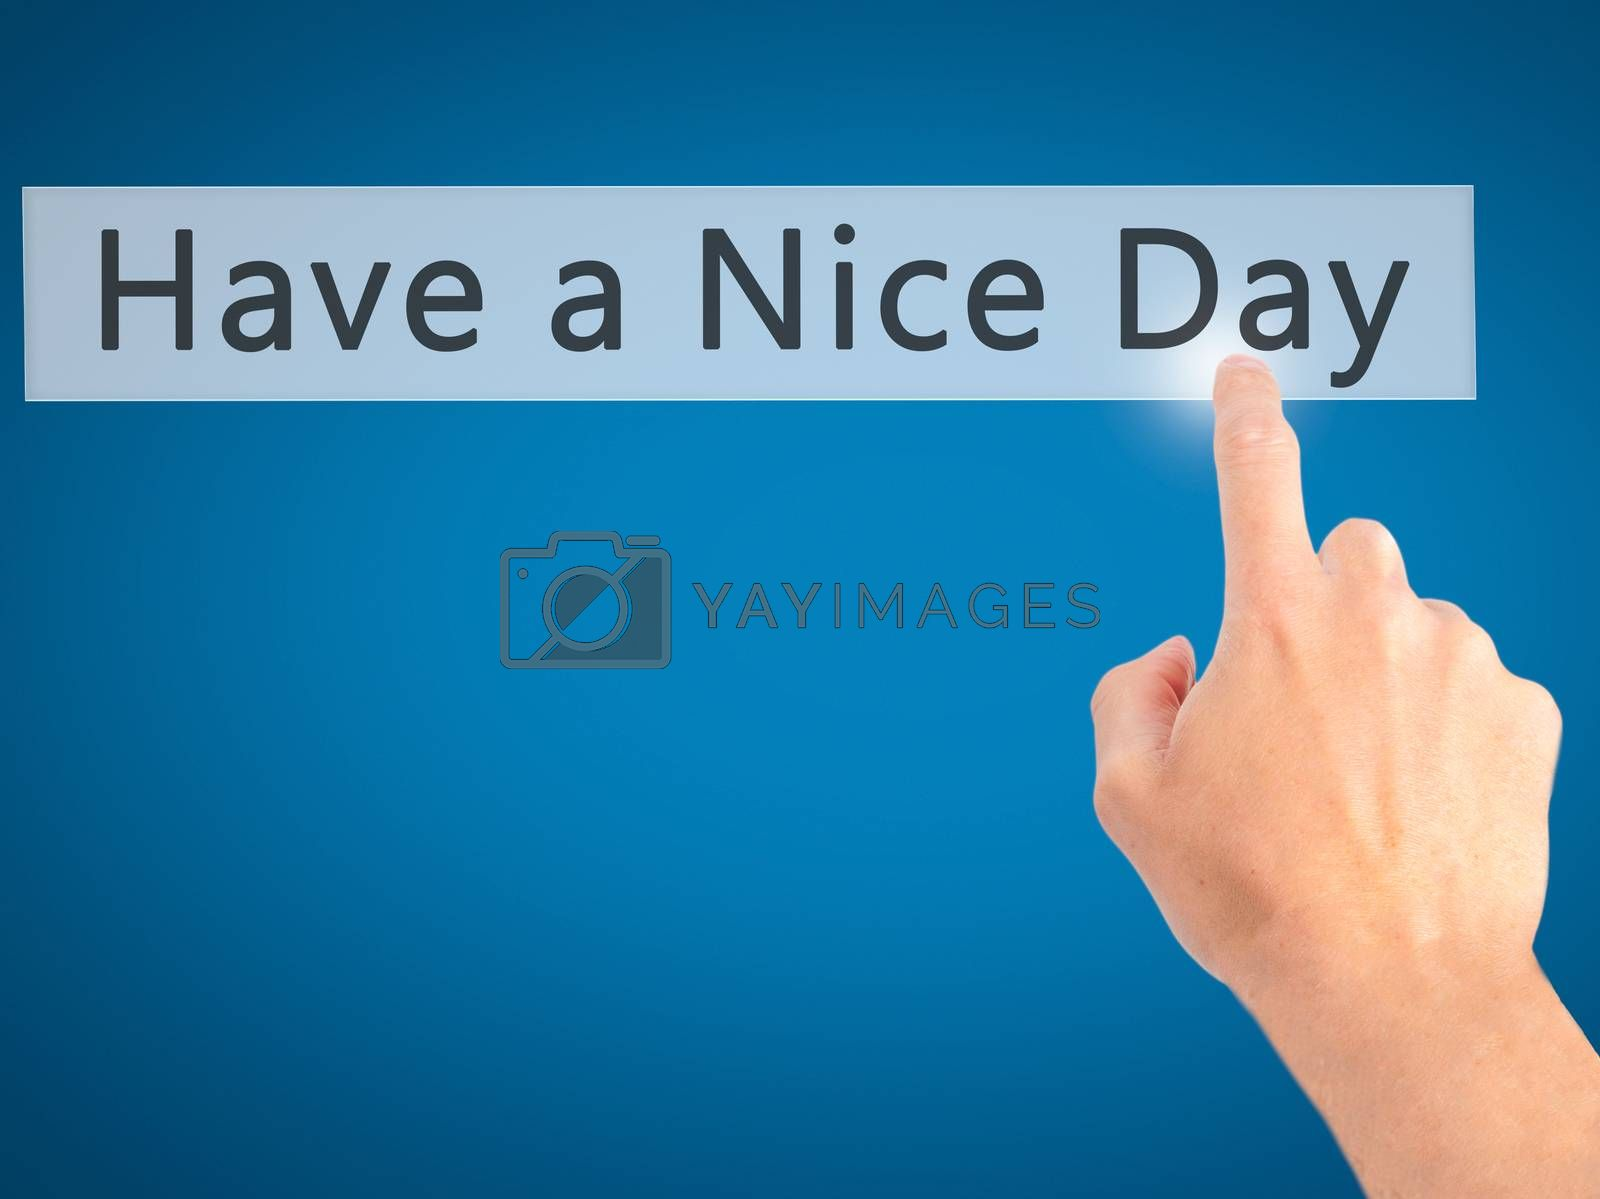 Have a Nice Day - Hand pressing a button on blurred background c by netsay.net